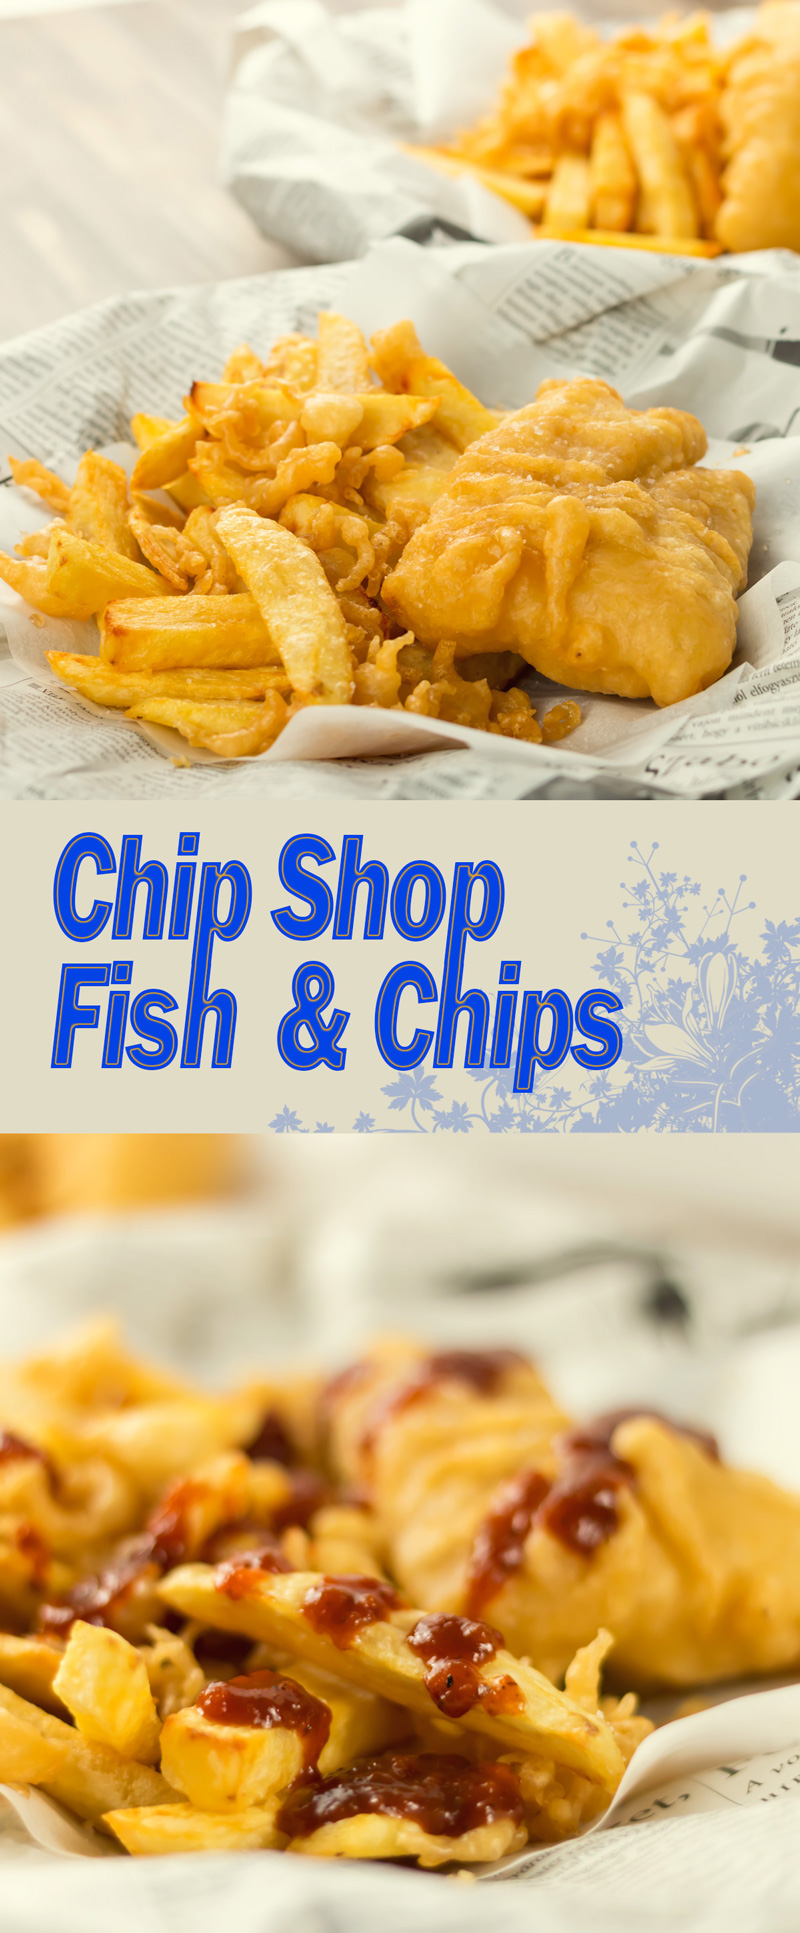 Freshwater fish and chip shop - Chip Shop Fish Chips